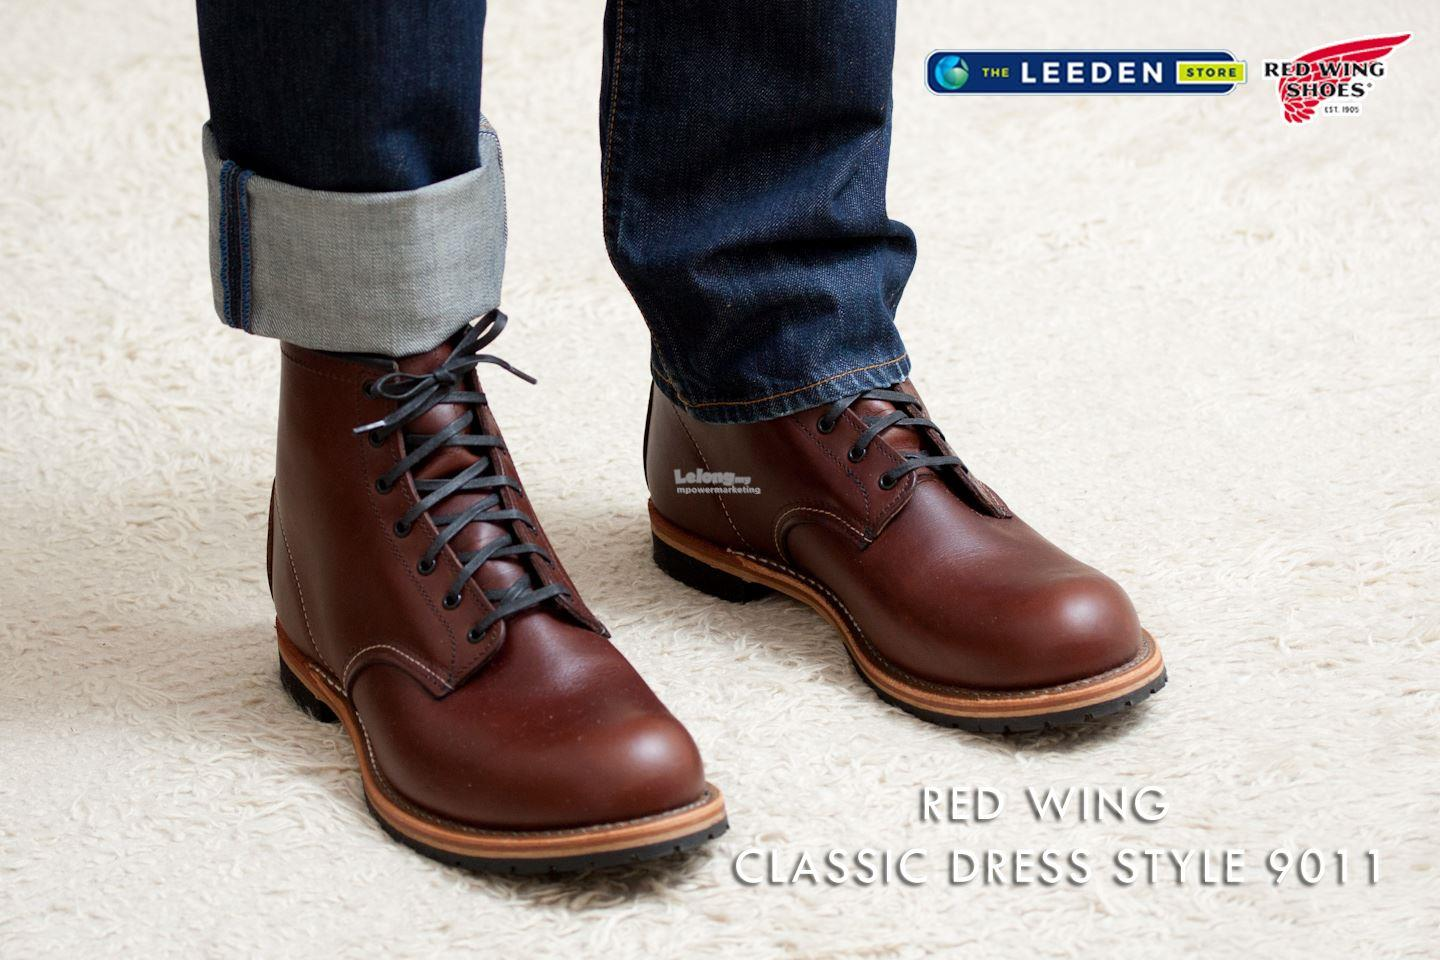 Red Wing Beckman Round Boot Shoes Ma End 6 15 2020 4 15 Pm